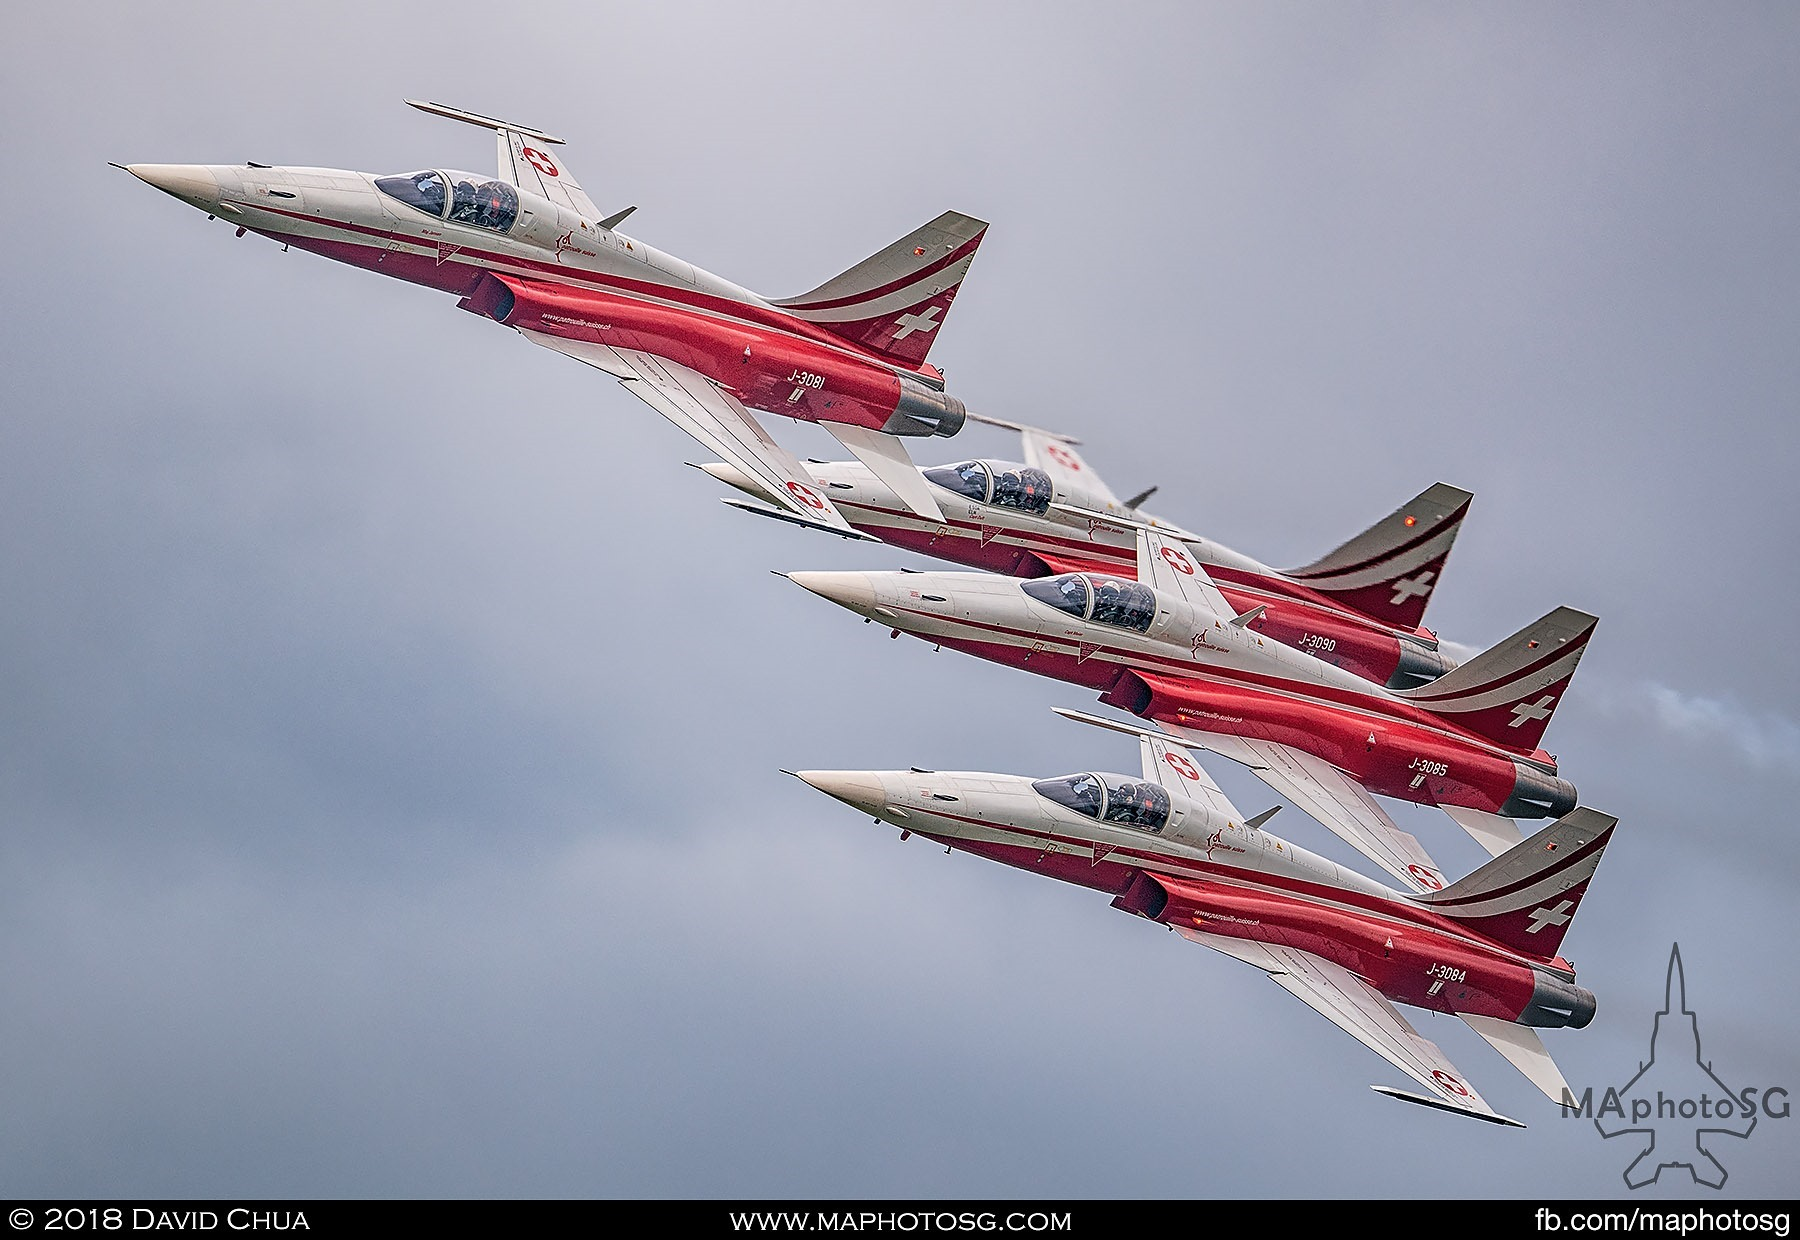 33. F-5E Tiger IIs of the Swiss Air Force Patrouille Suisse Team